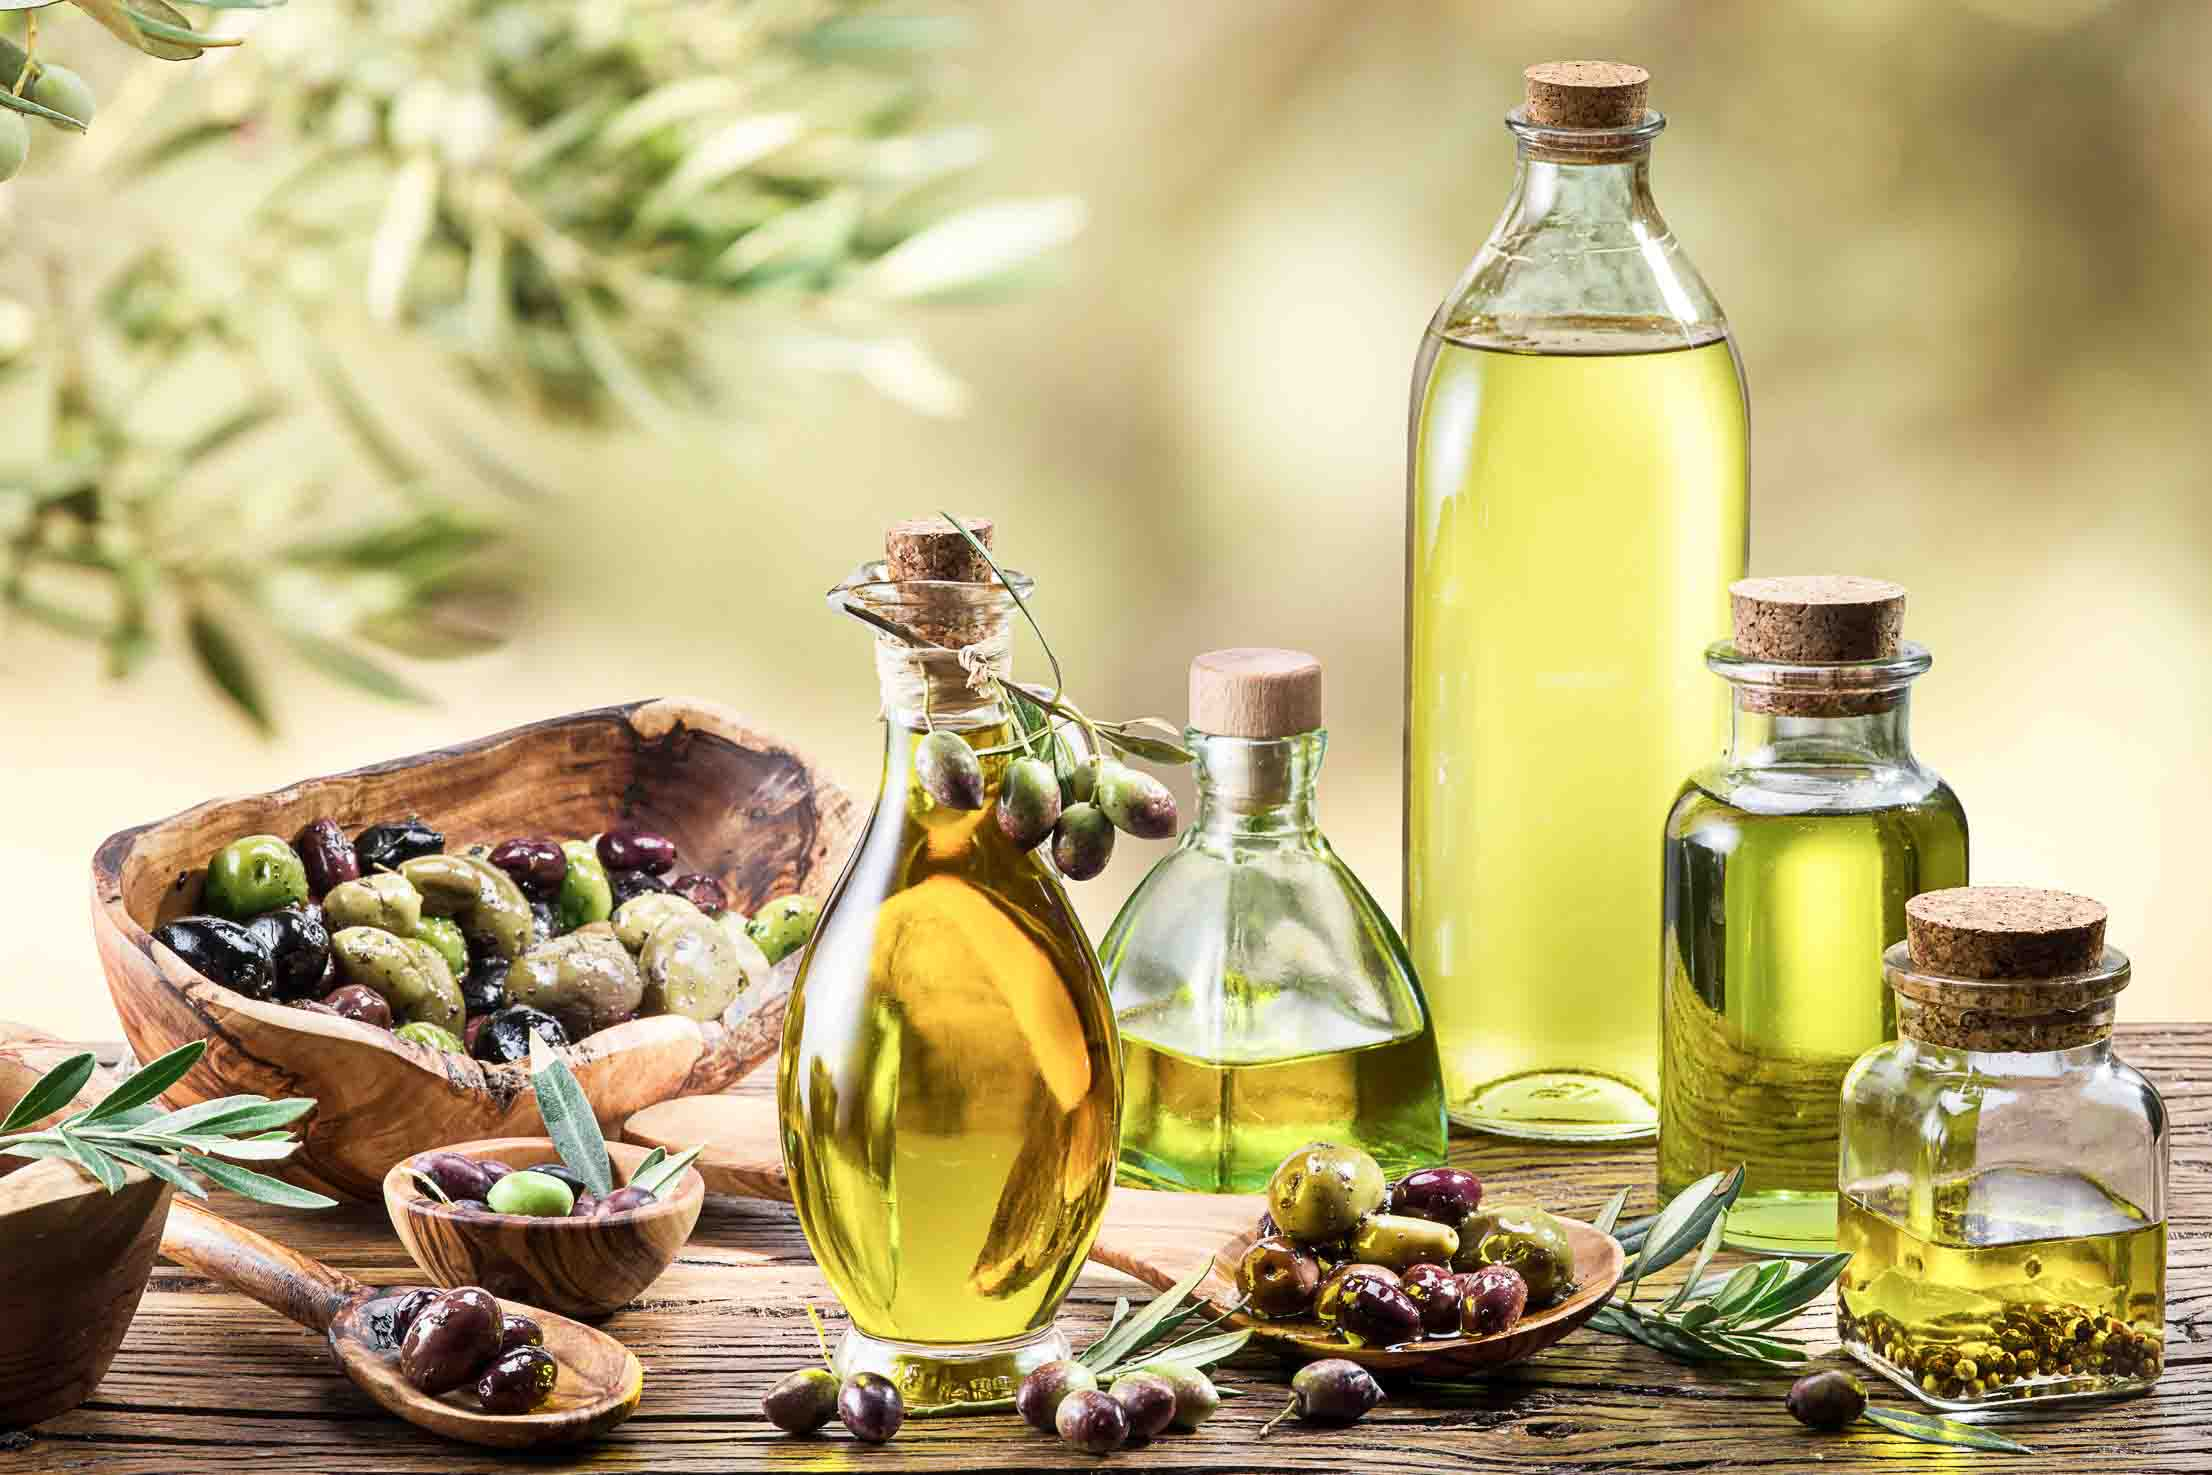 About Olive & Olive Oil